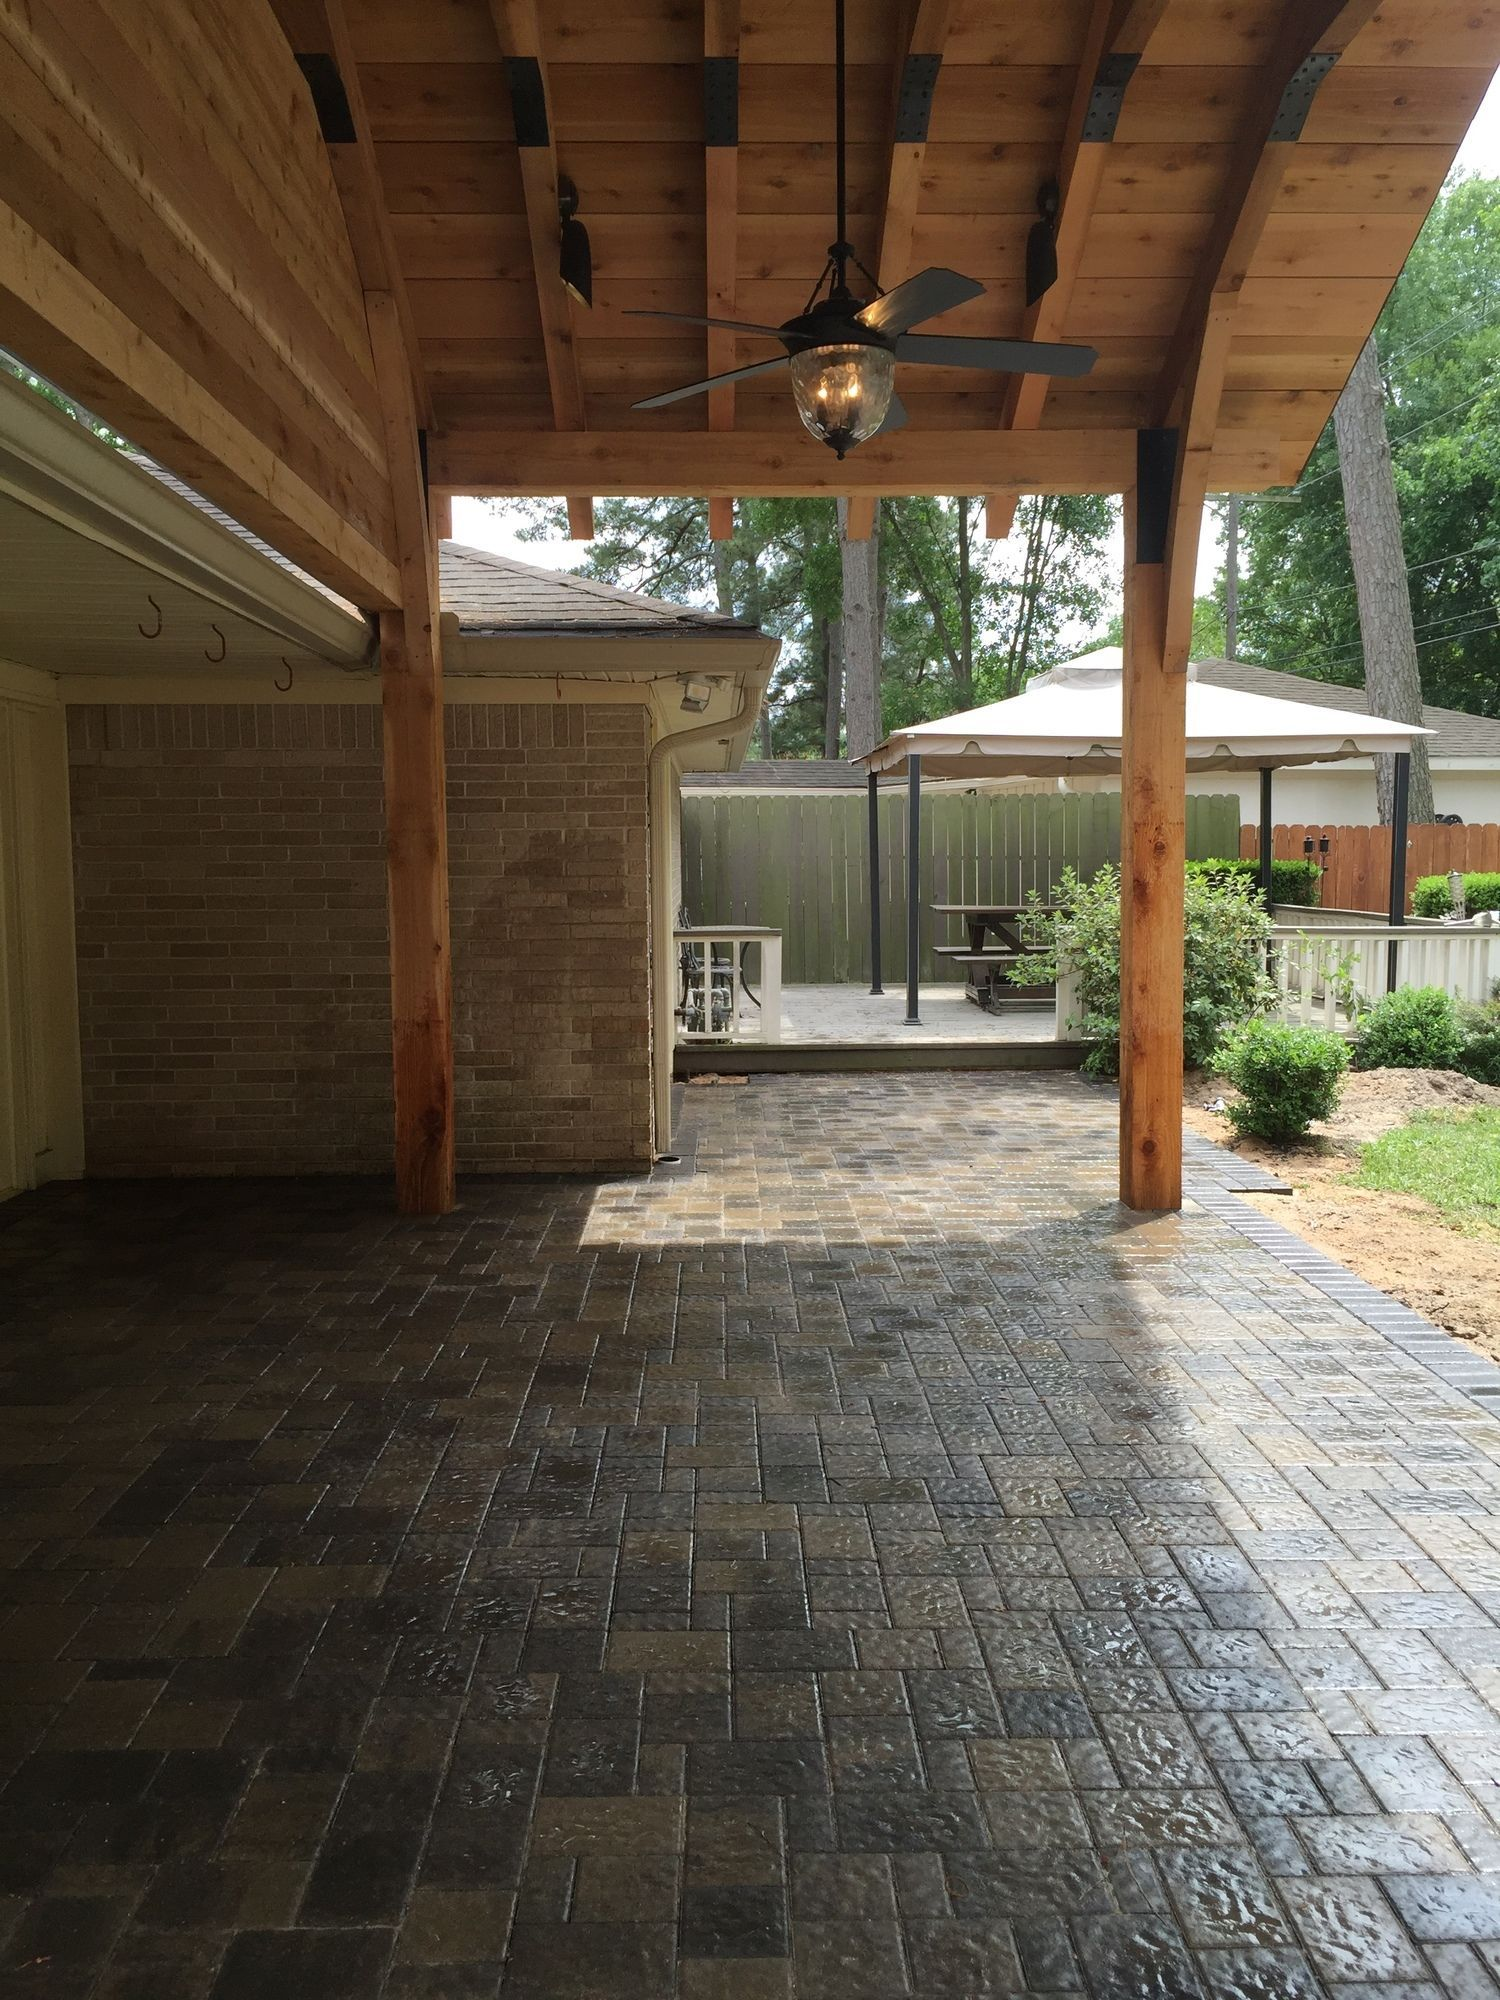 Primo Outdoor Living in 2020 | Paver patio, Outdoor living ... on Primo Outdoor Living  id=96649